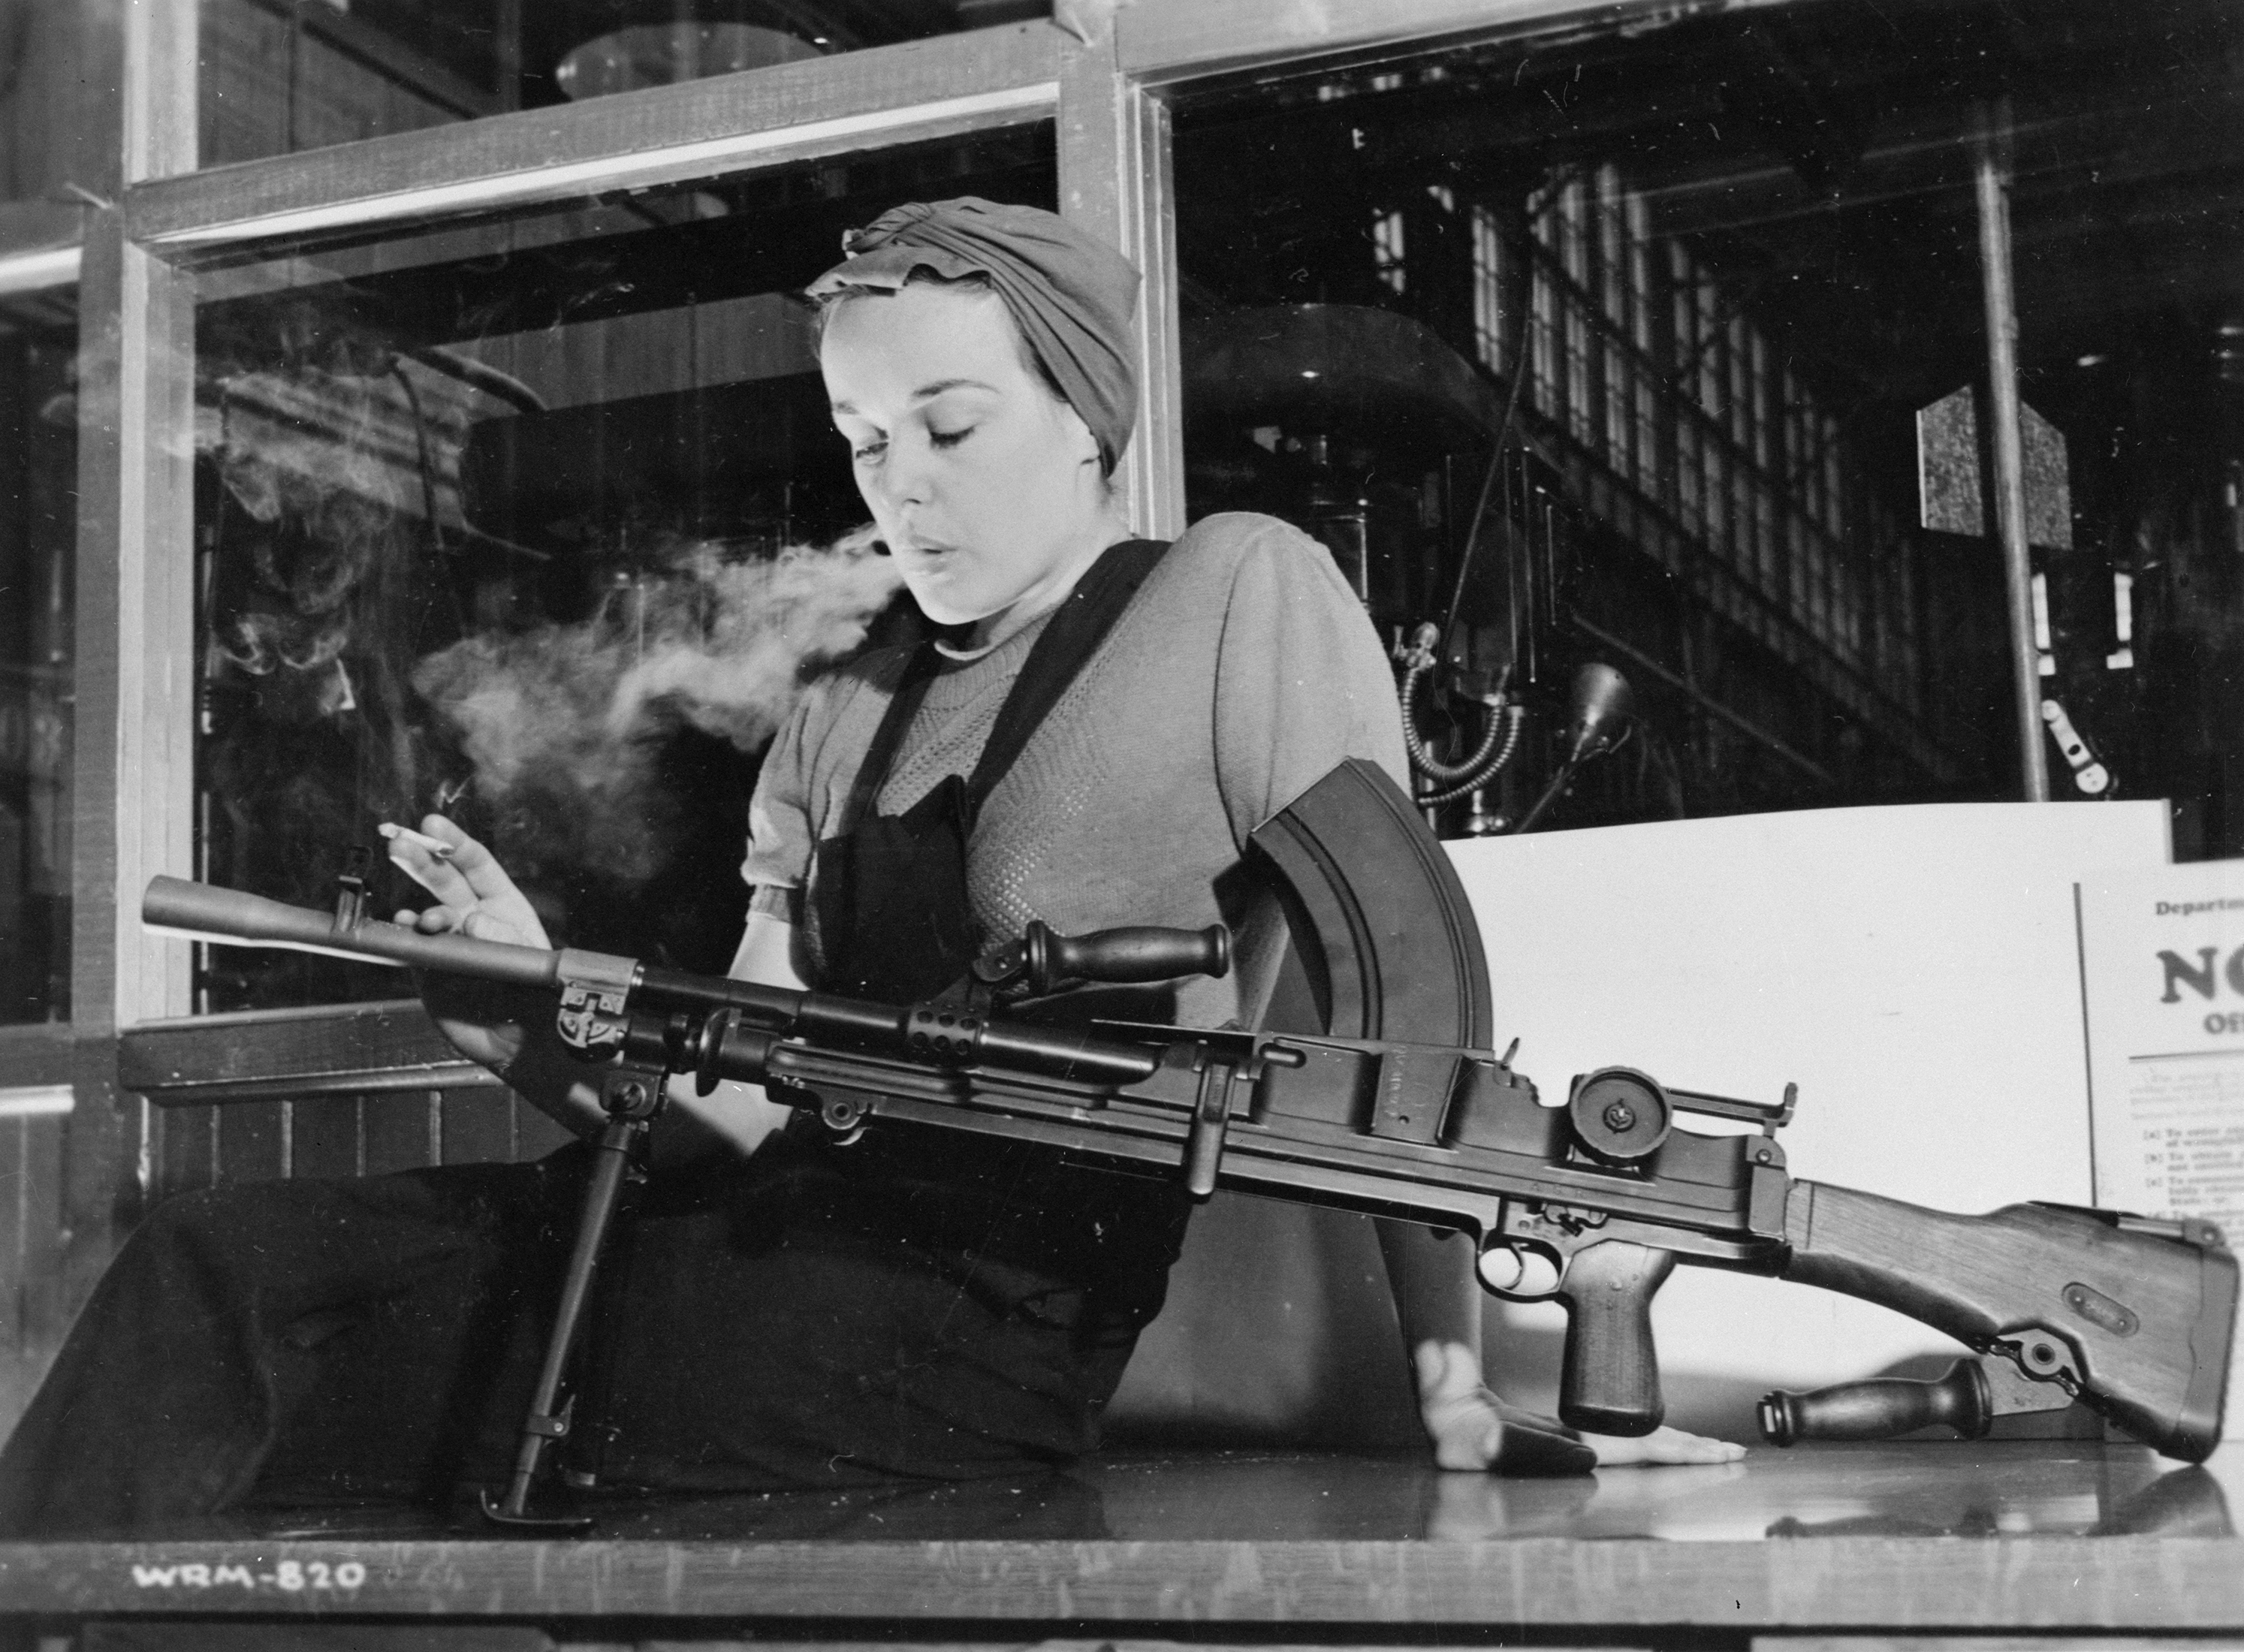 This black-and-white photograph shows a woman in overalls with her hair wrapped in a kerchief. Seated on a table, she is smoking a cigarette while gazing at a Bren machine gun. A factory building is visible through the window behind her.